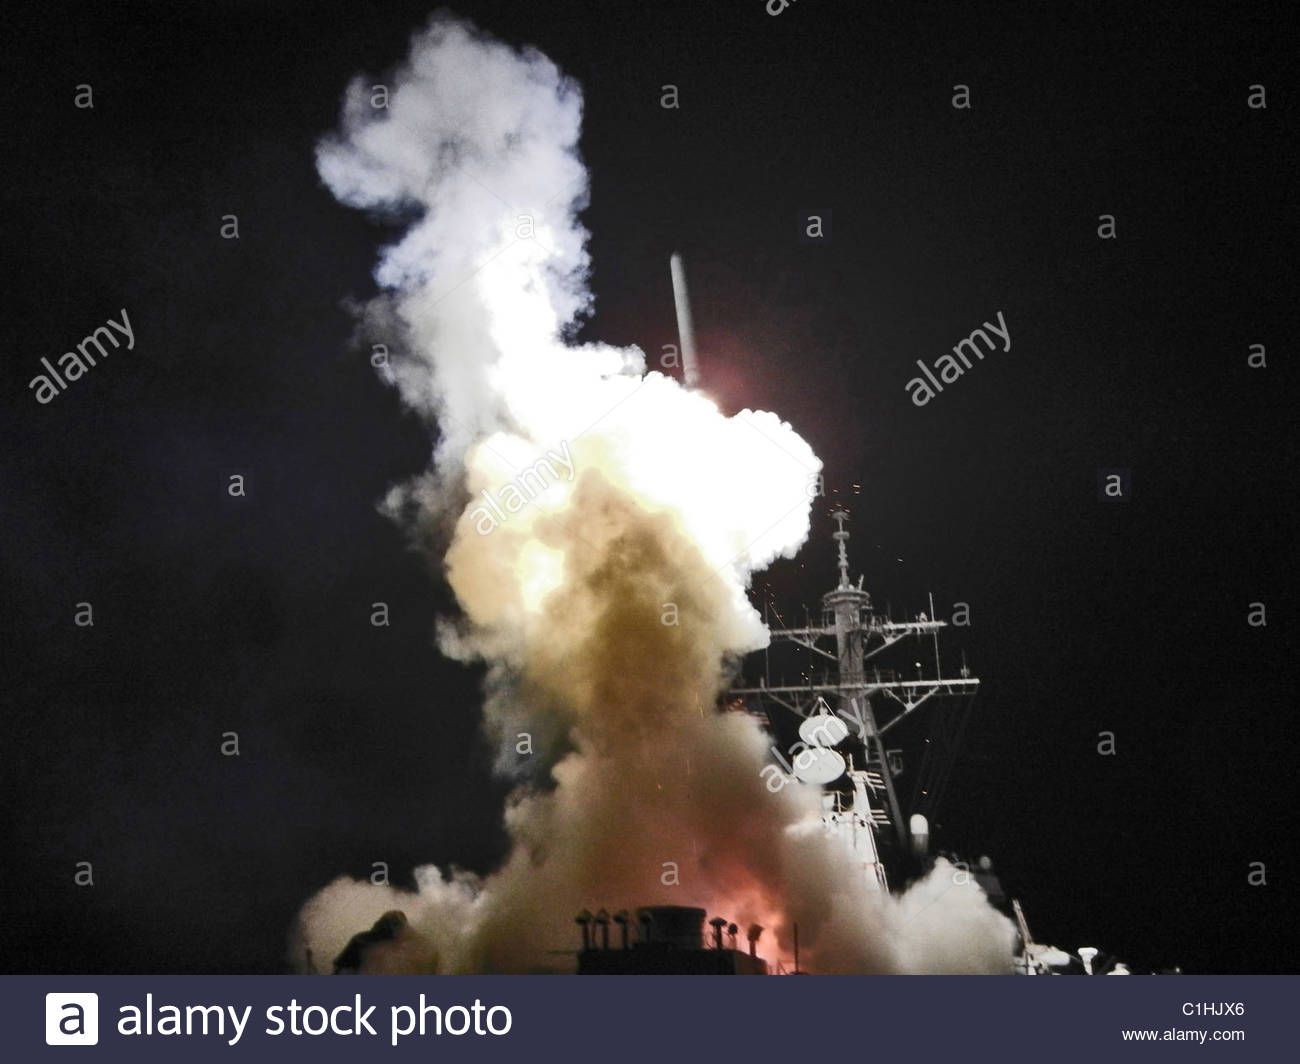 2011 March - US NAVY - Libya - Tomahawk missile in support of Operation Odyssey Dawn - Stock Image